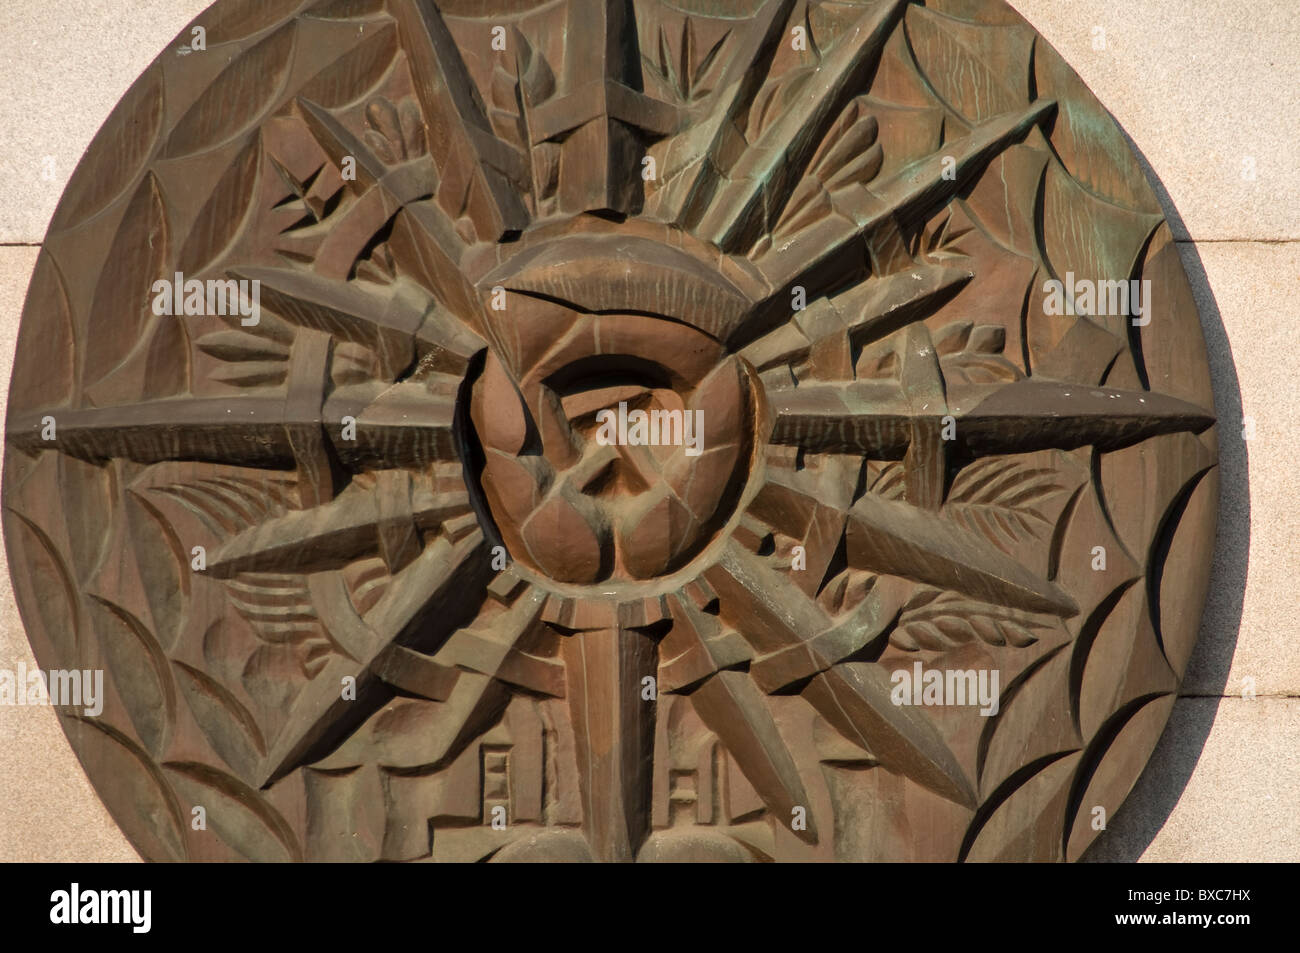 Wall Relief with Hammer and Sickle, New City Hall of Ostrava, Czech Republic - Stock Image